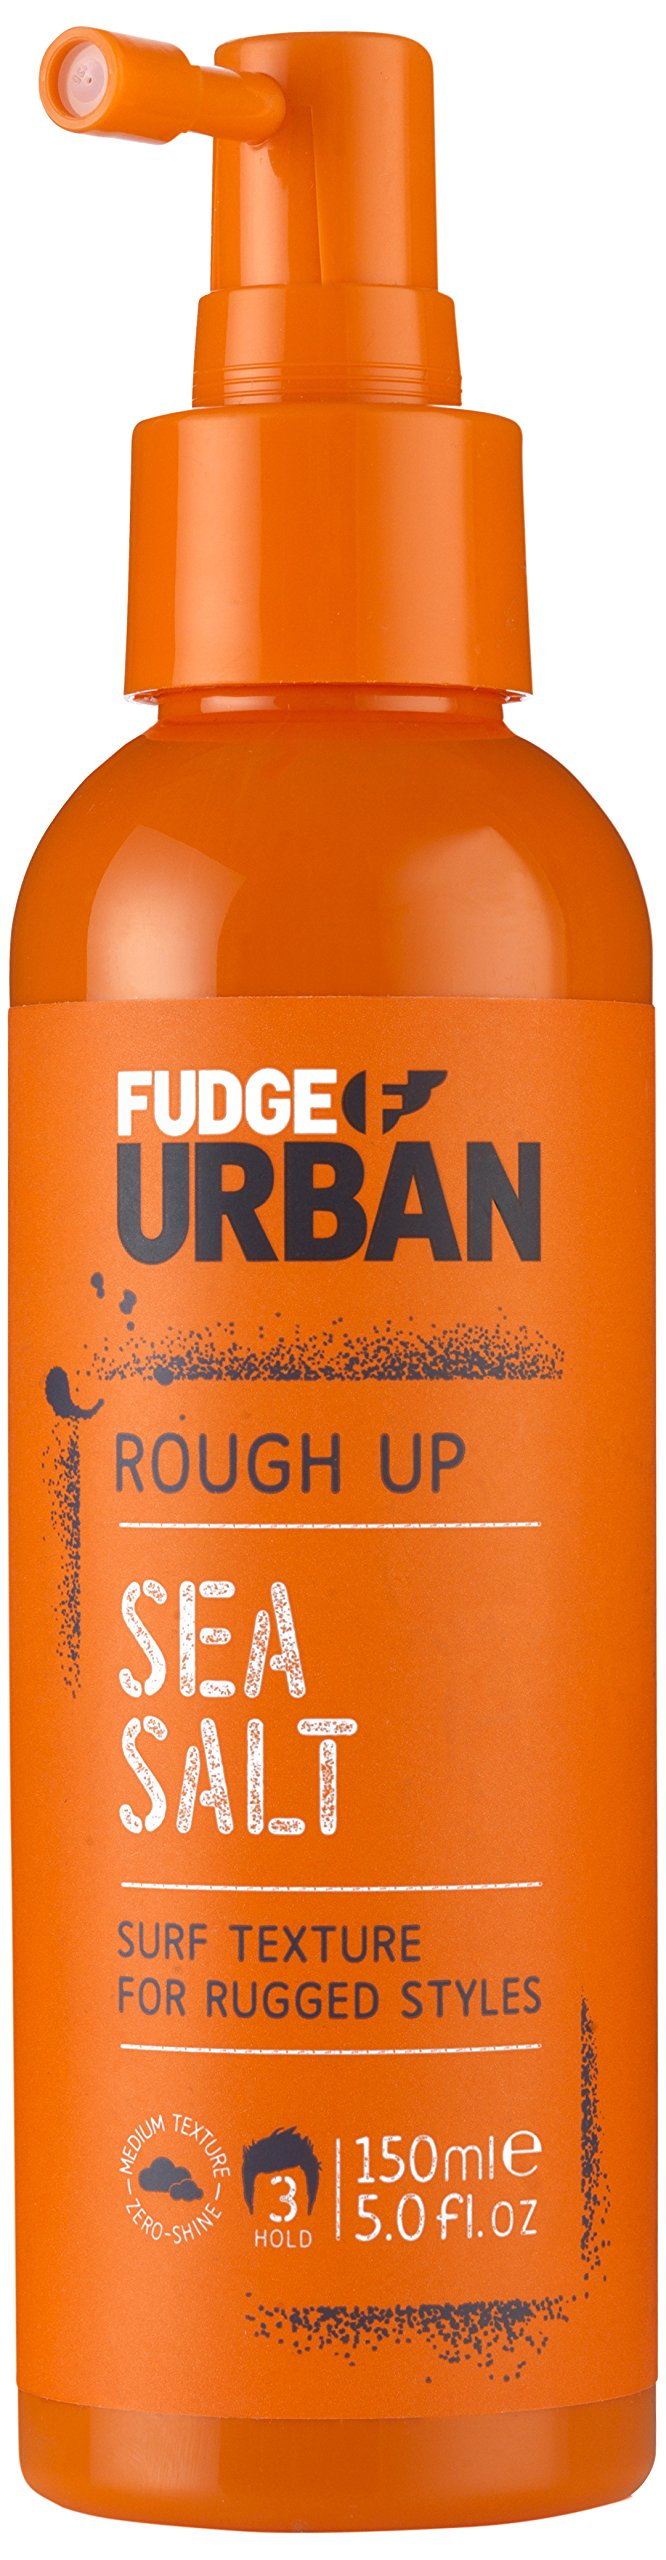 Fudge Urban Salt Spray, Texturising Sea Salt Spray, Mineral Rich Hair Styling Product Adds Volume and Flexible Hold for Men and for Women, 150 ml